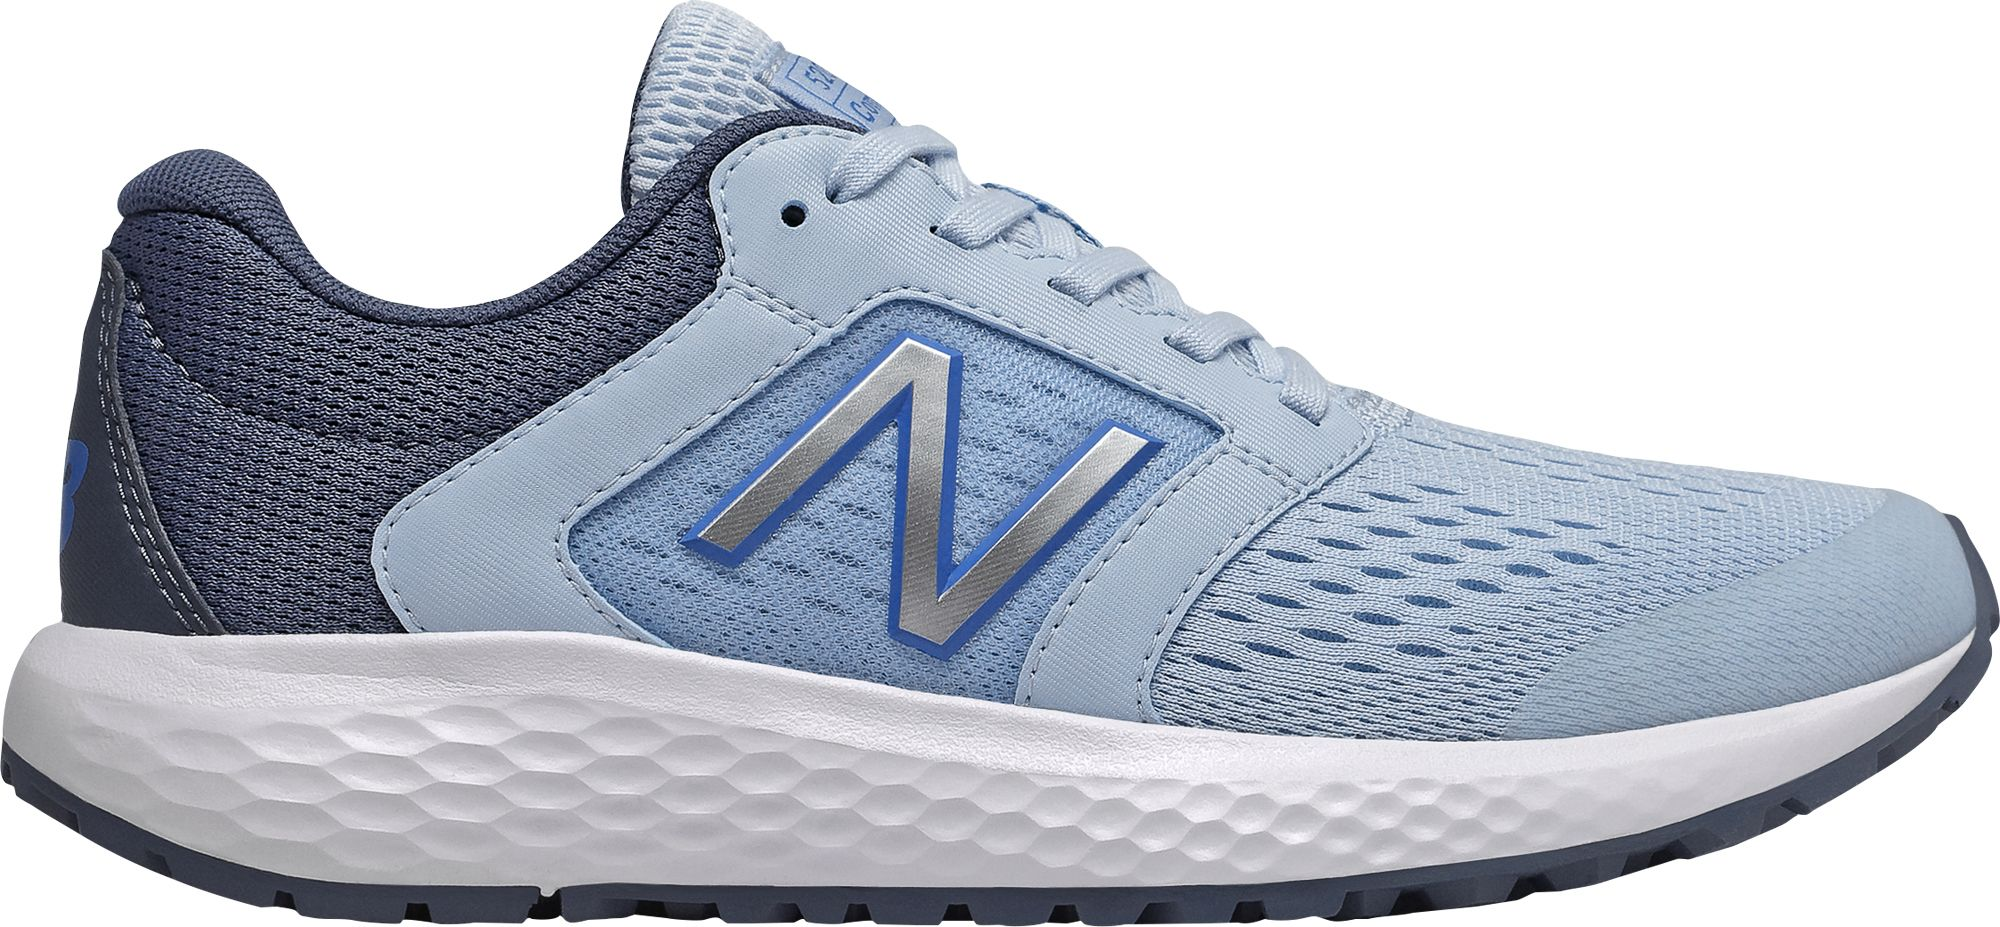 new balance shoes womens running